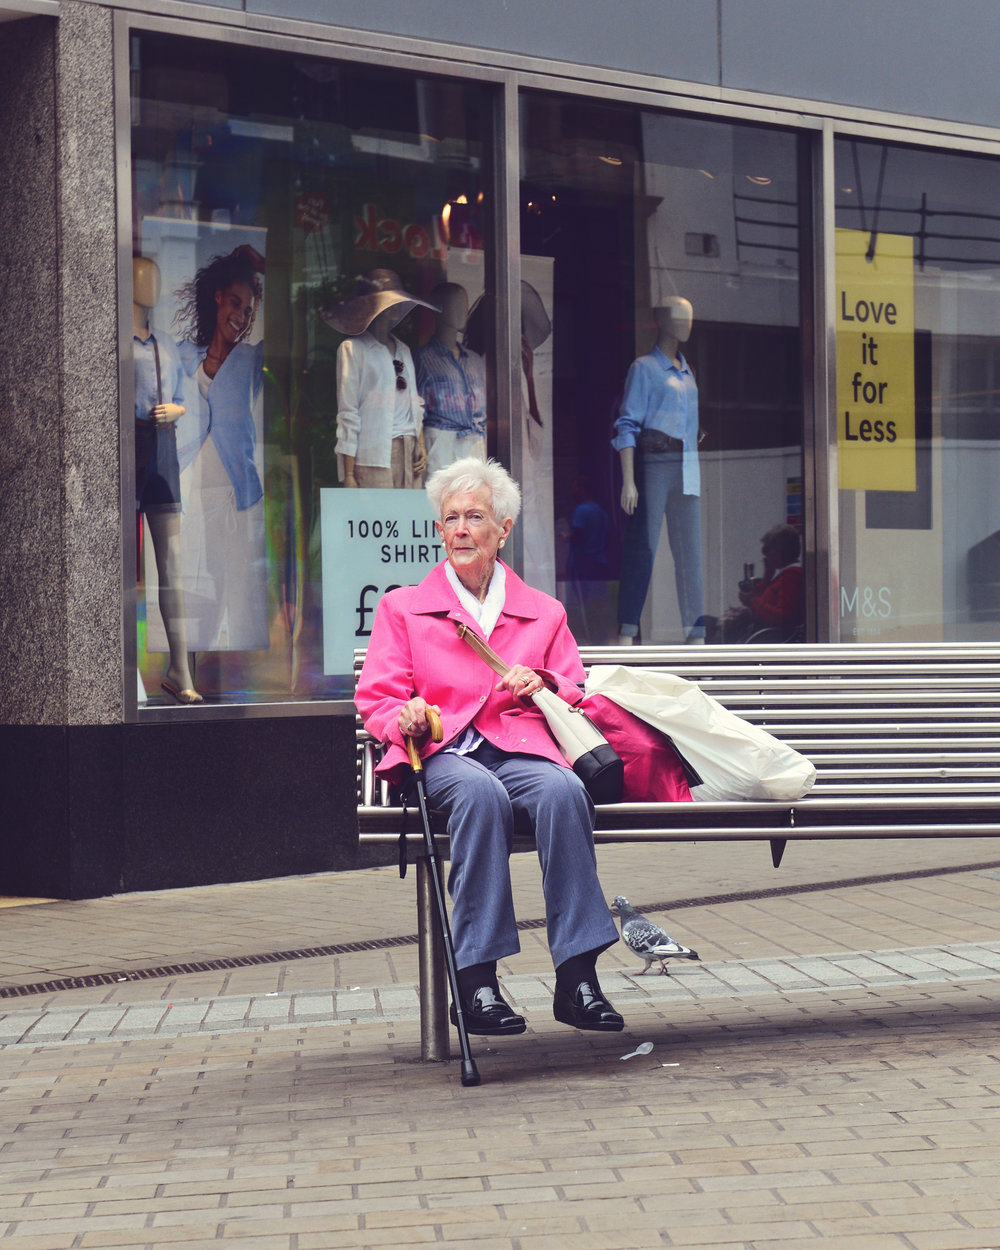 An elderly woman sits on a bench localted on New Kirkgate - Leeds main shopping strip.